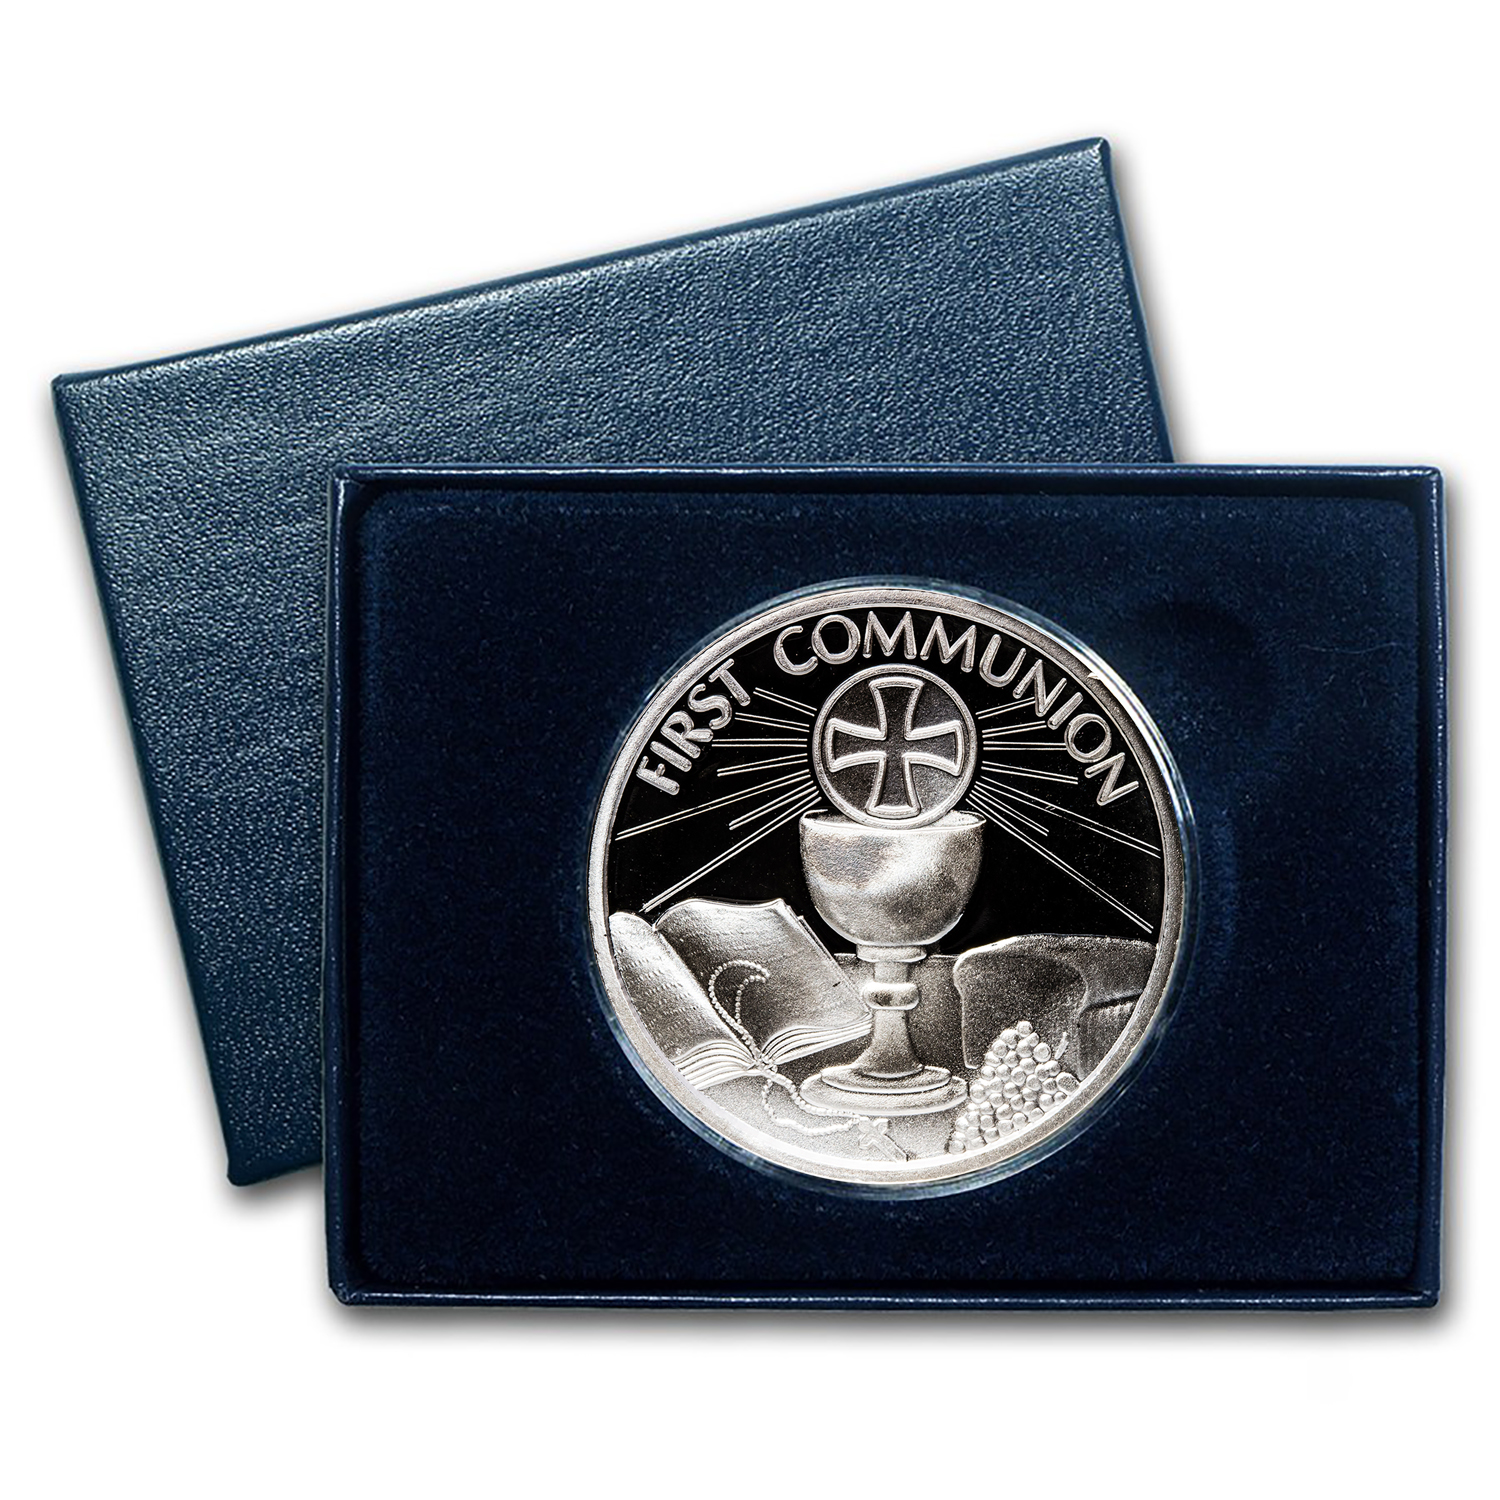 2015 1 oz Silver Round - Communion (w/Box & Capsule)